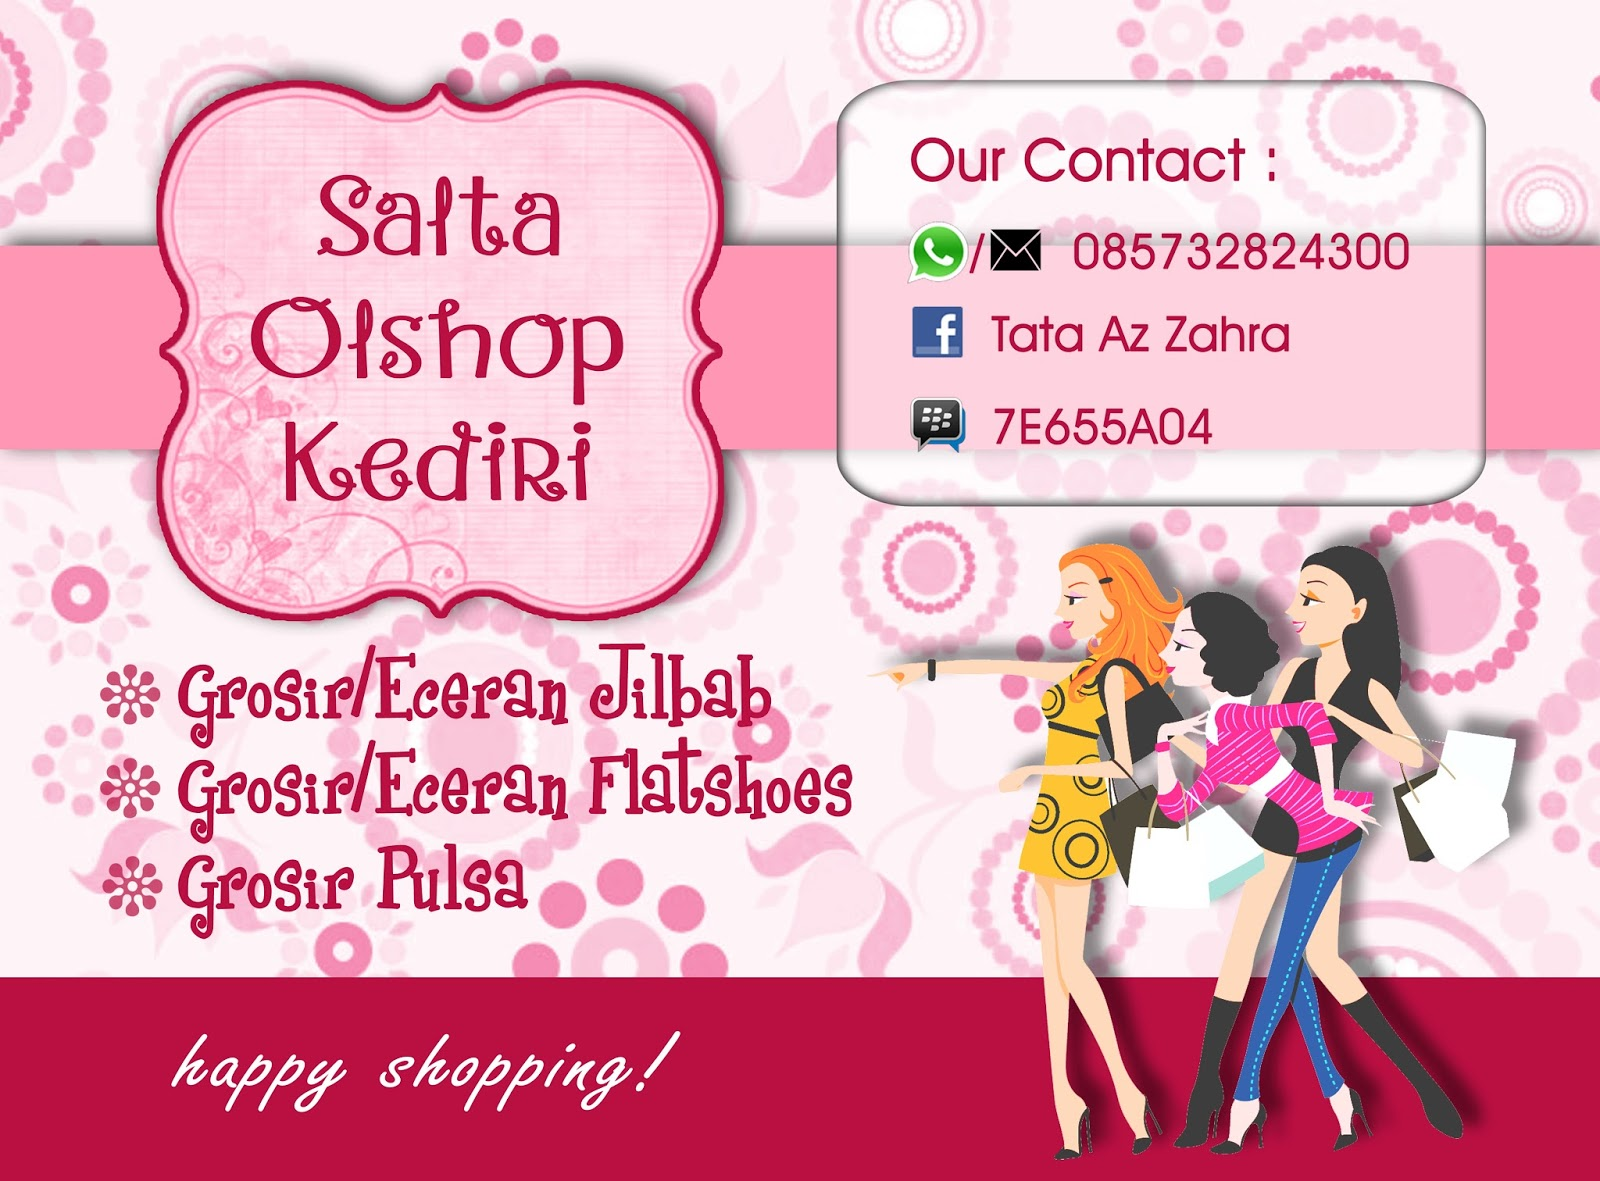 kreasi banner olshop by psare project pshare project. Black Bedroom Furniture Sets. Home Design Ideas